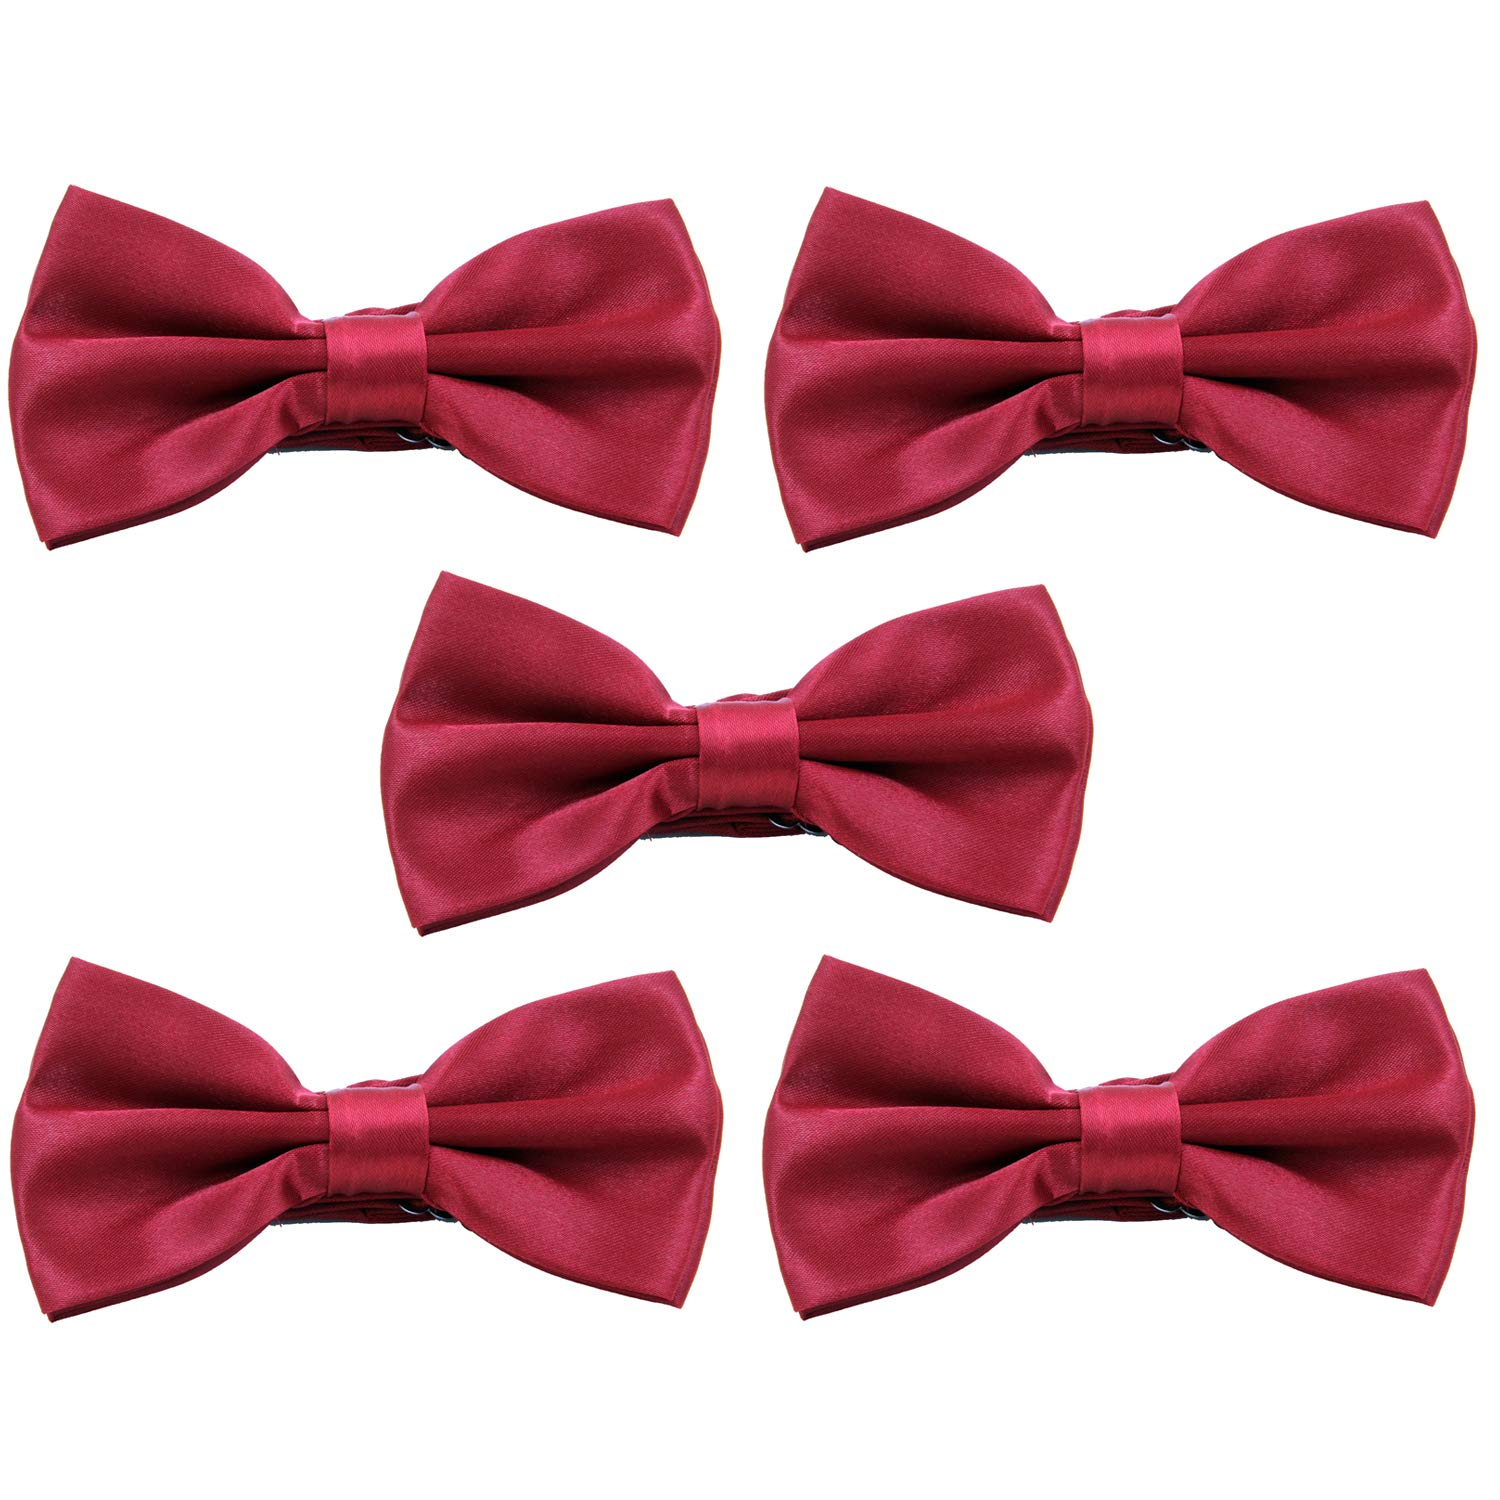 Black BOROLA 5PCS Elegant Pre-tied Adjustable Mens Bow Tie for Men Boys